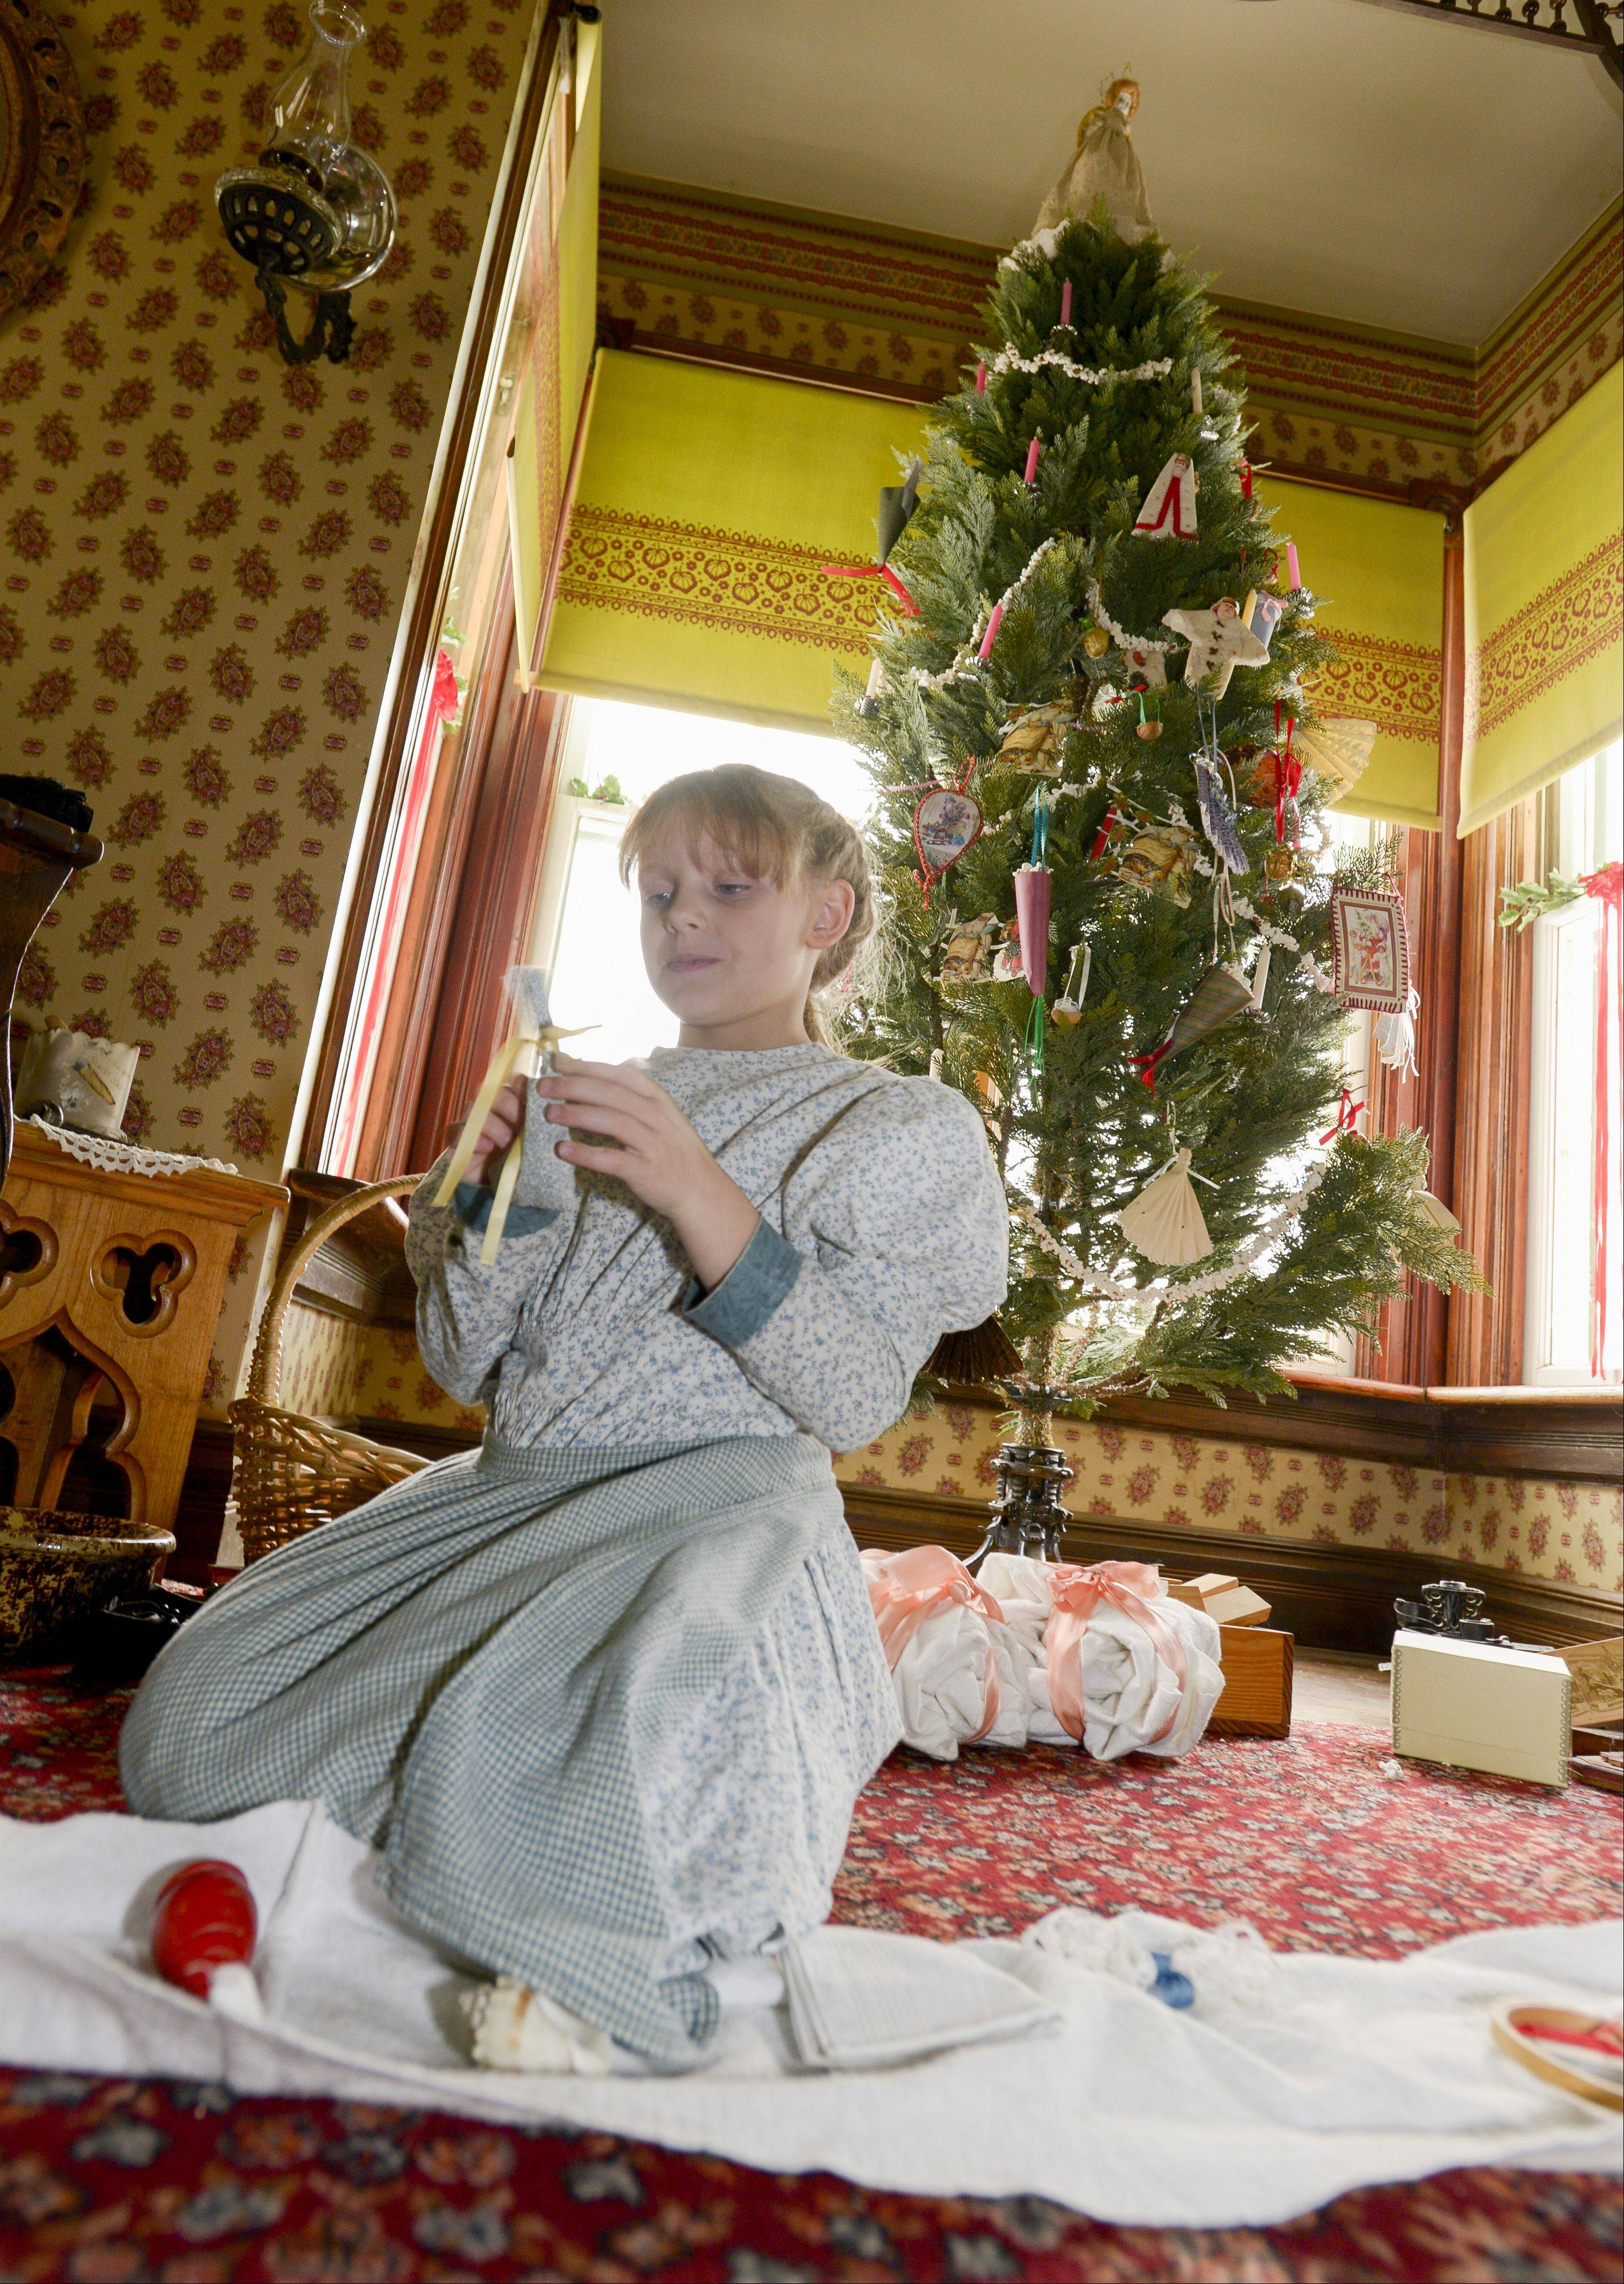 Annemarie Zimmerman, 7, of Wheaton plays near a traditional 1890s Christmas tree on display Sunday at Kline Creek Farm. The farm is offering visitors a tour showing how people living in what are now Chicago's suburbs would have celebrated the holidays more than 120 years ago.